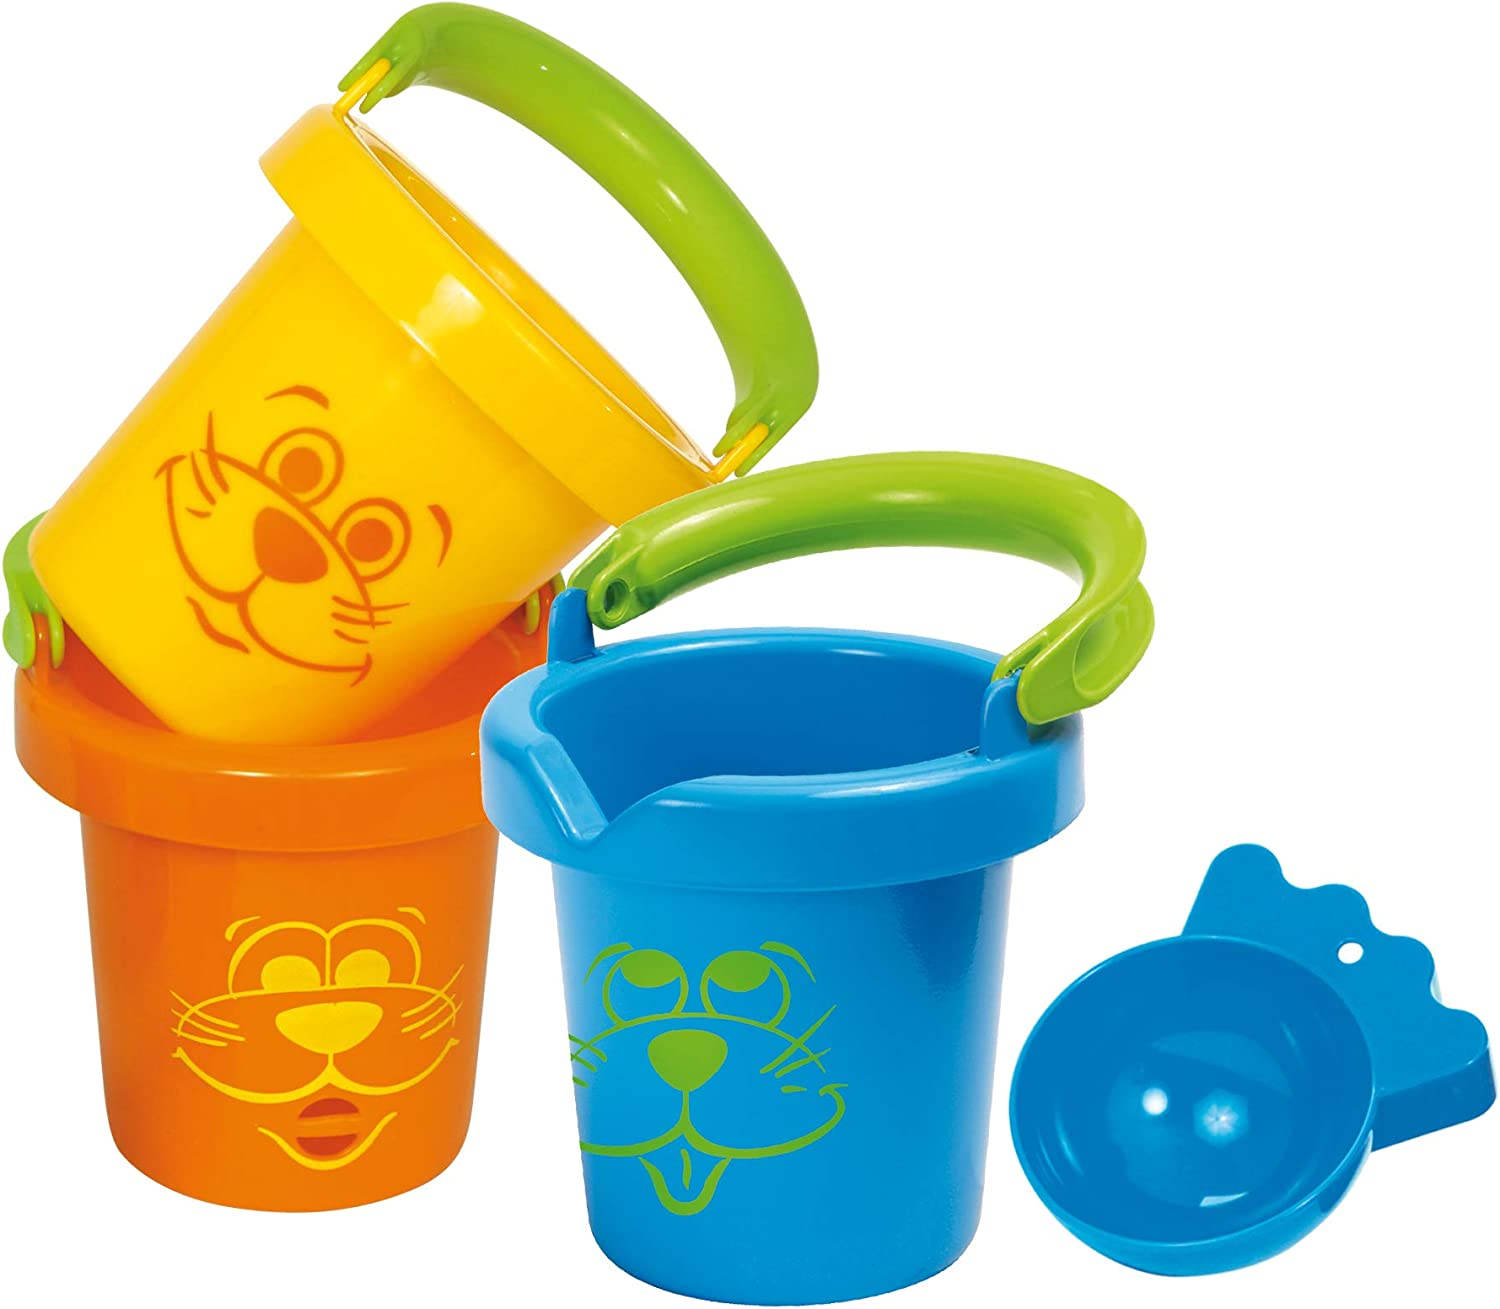 Gowi Toys 558-06 Wild Animal Bucket One Supplied - Designs Vary